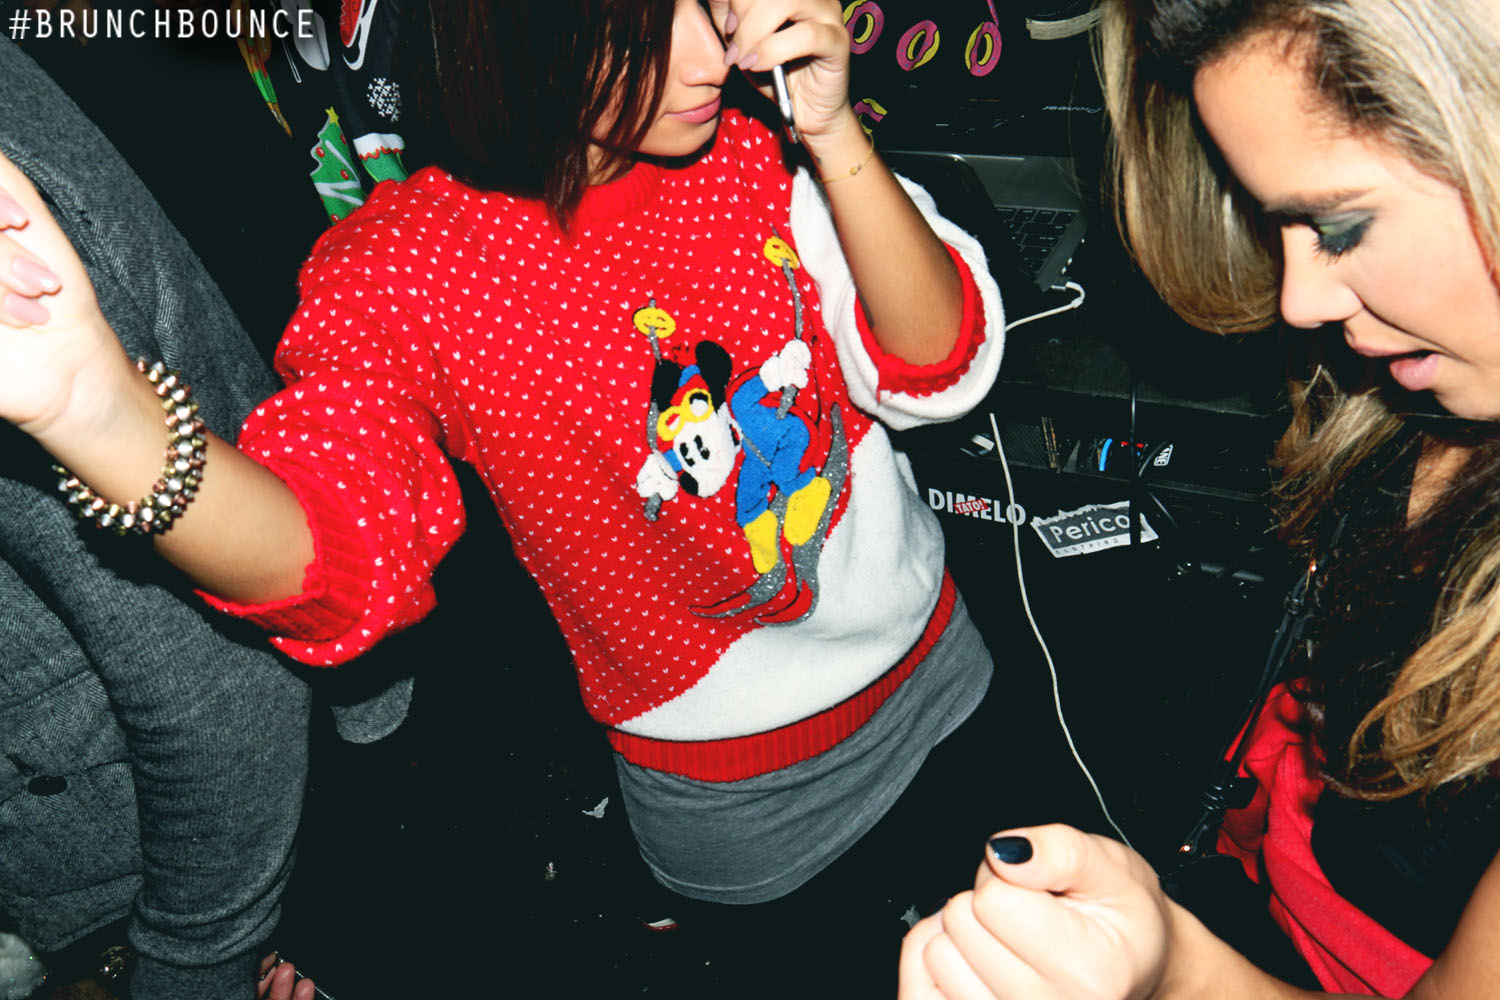 brunchbounce-ugly-christmas-sweater-party-122014_16082711655_o.jpg